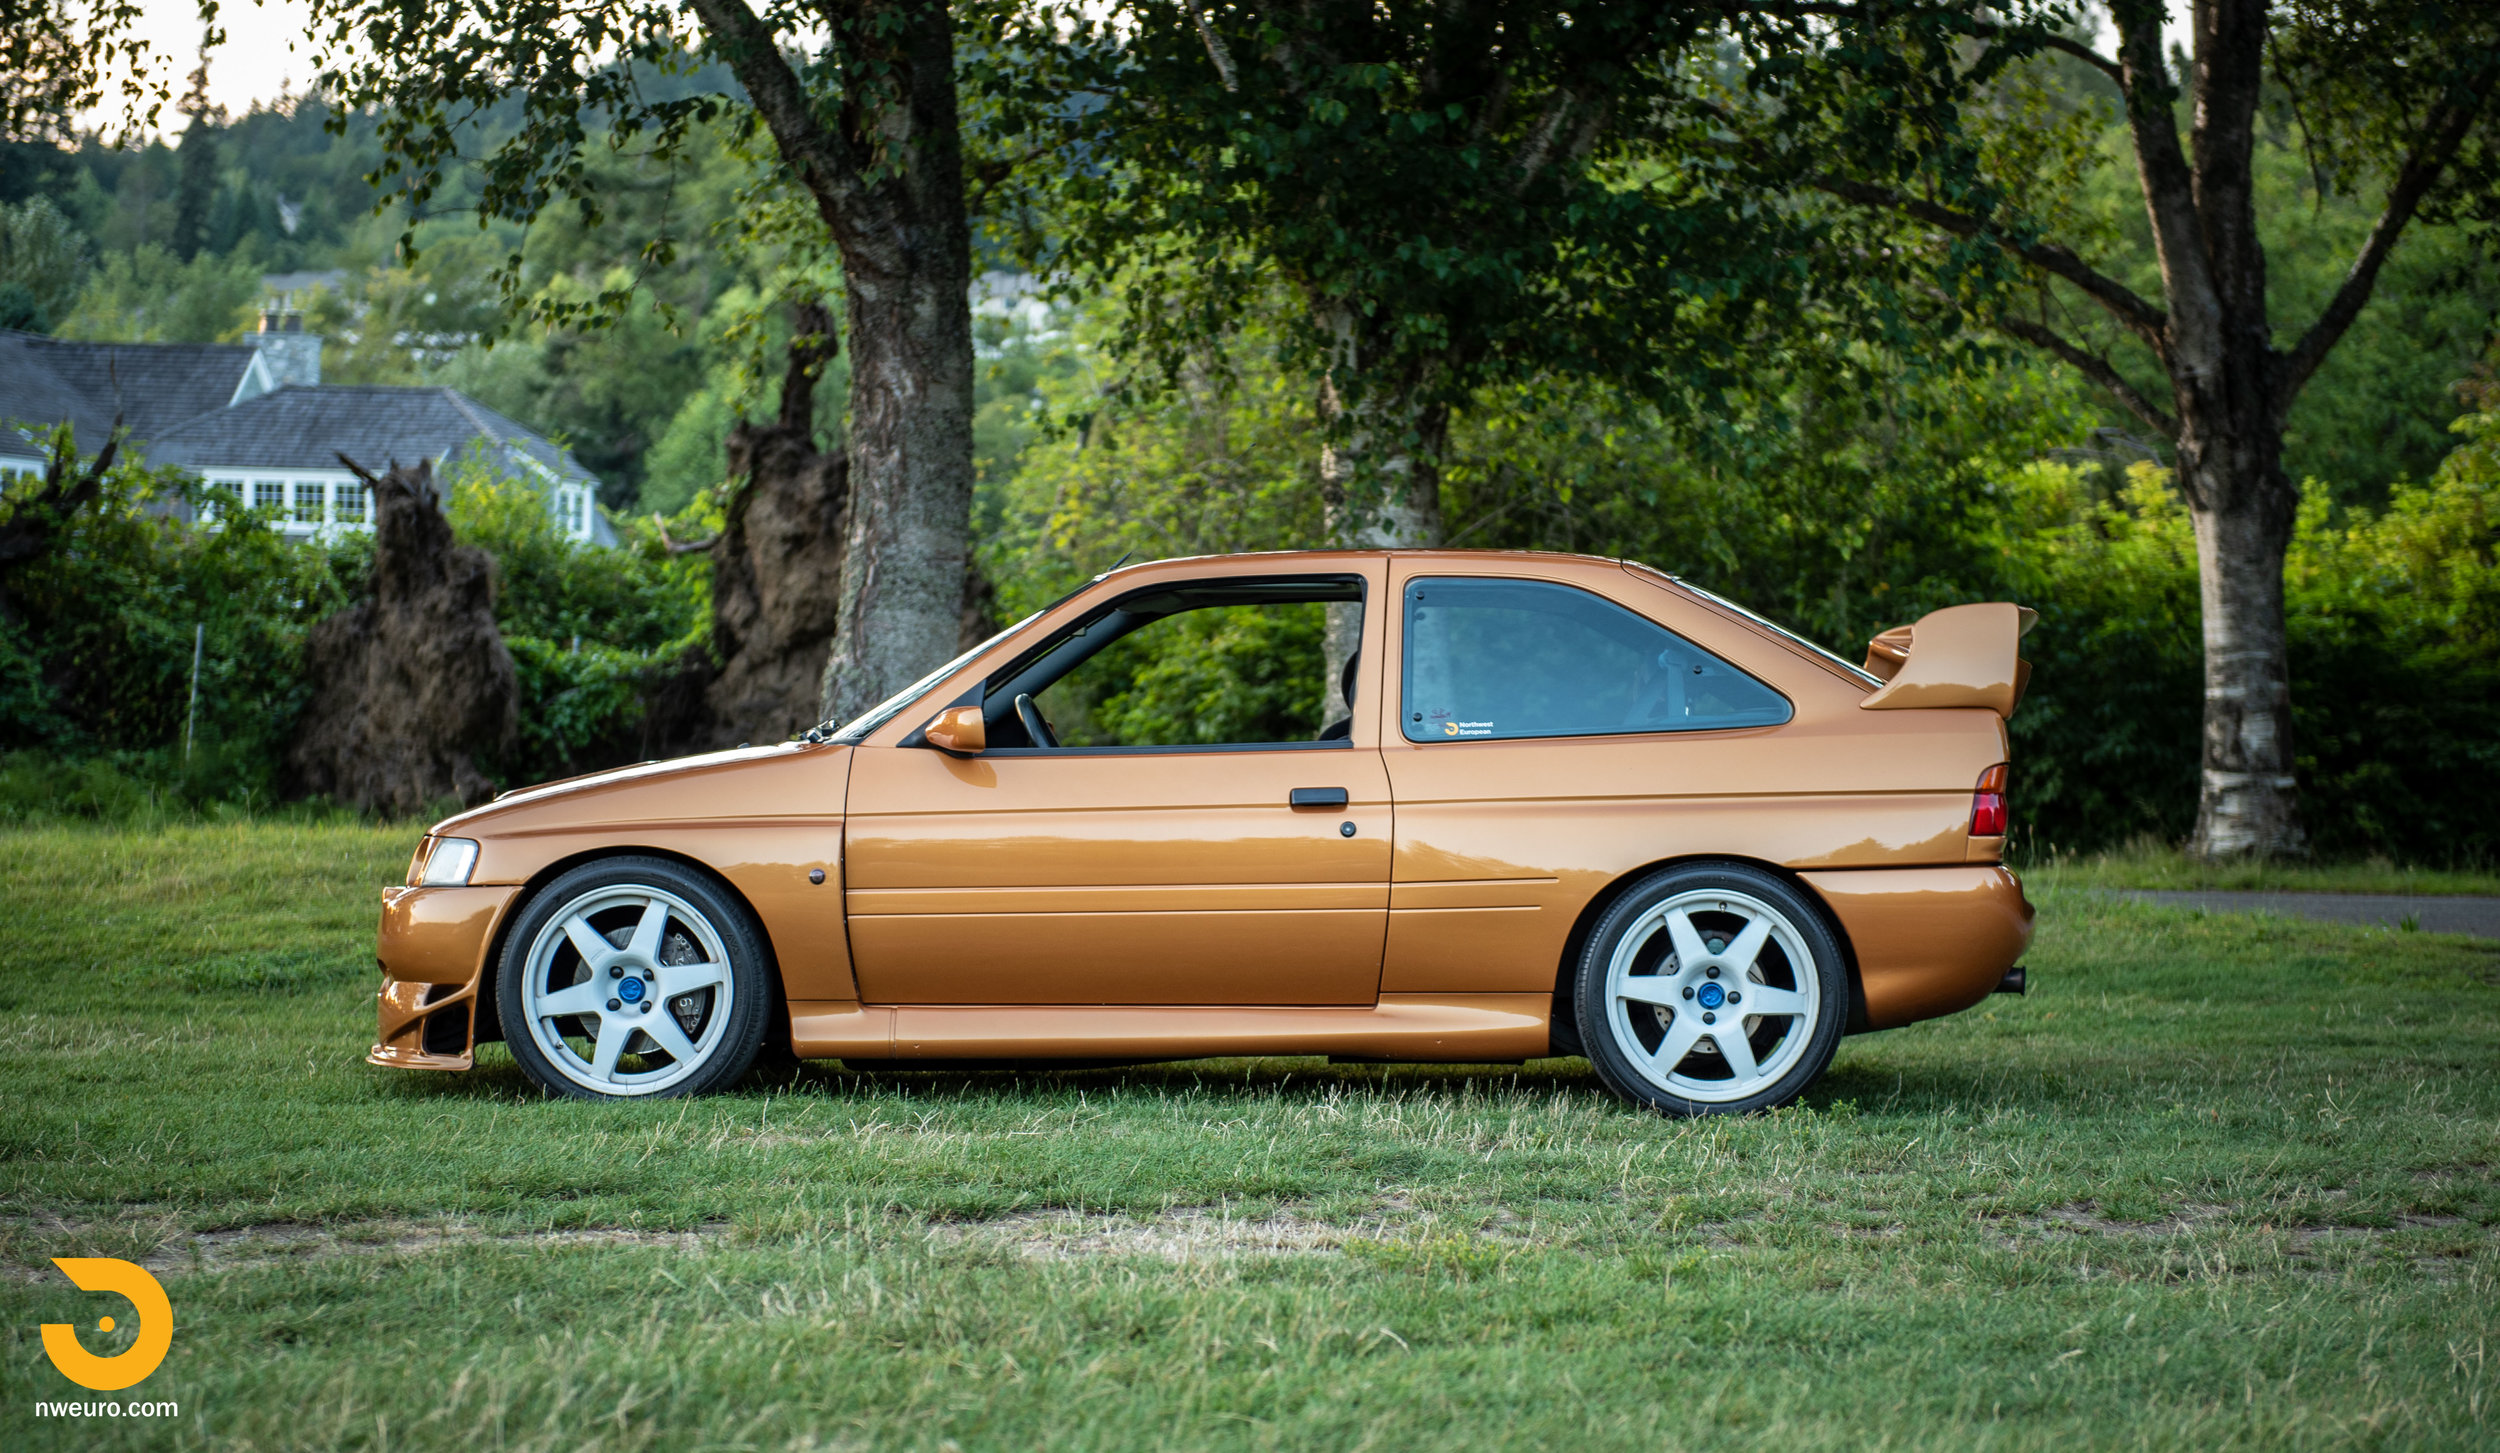 1995 Ford Escort Cosworth RS Gold-49.jpg